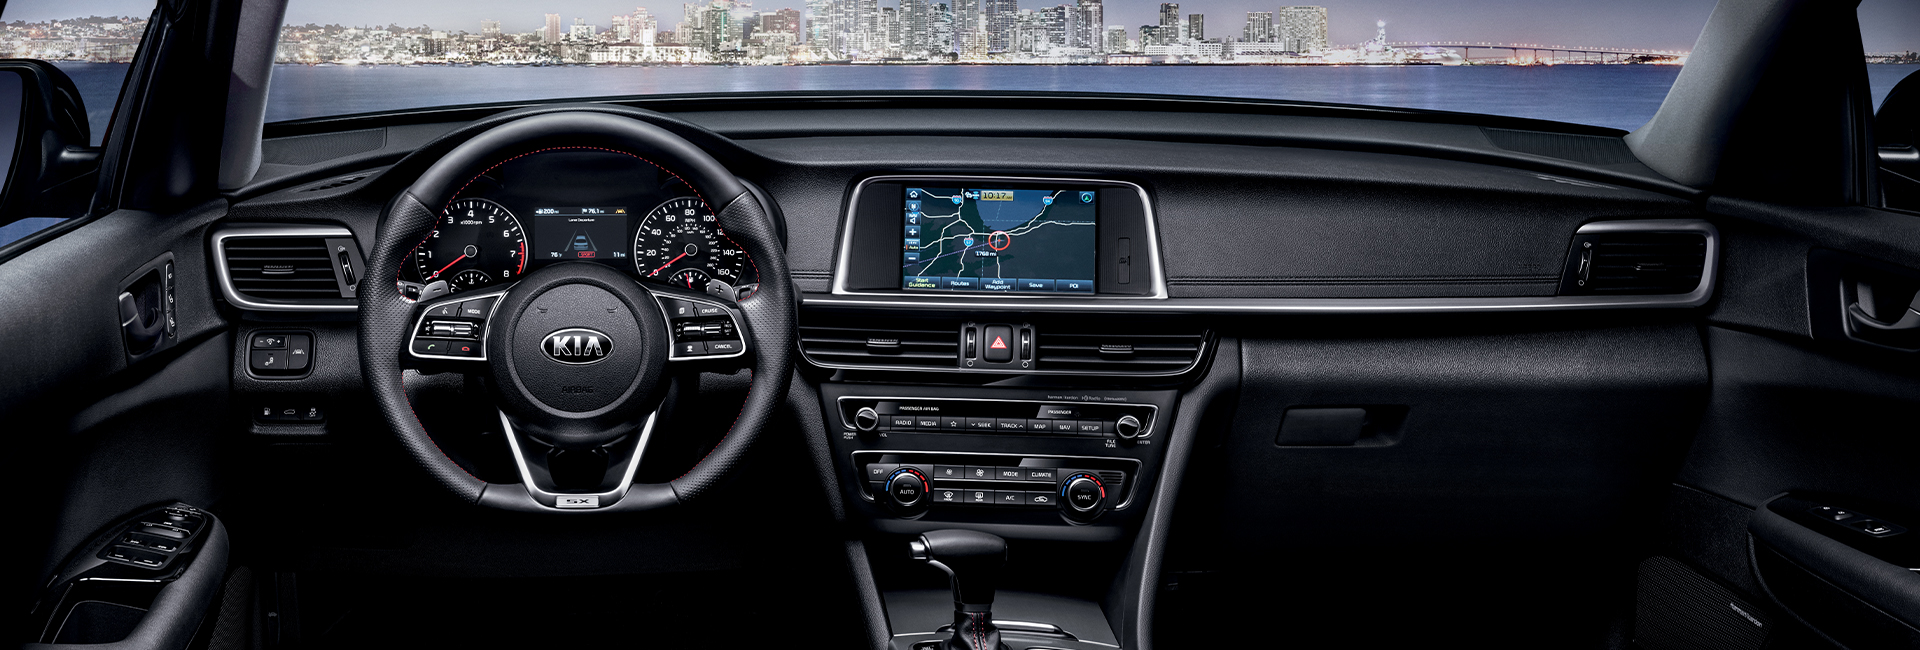 Interior image of the 2020 Kia Optima for sale at Spitzer Kia Mansfield